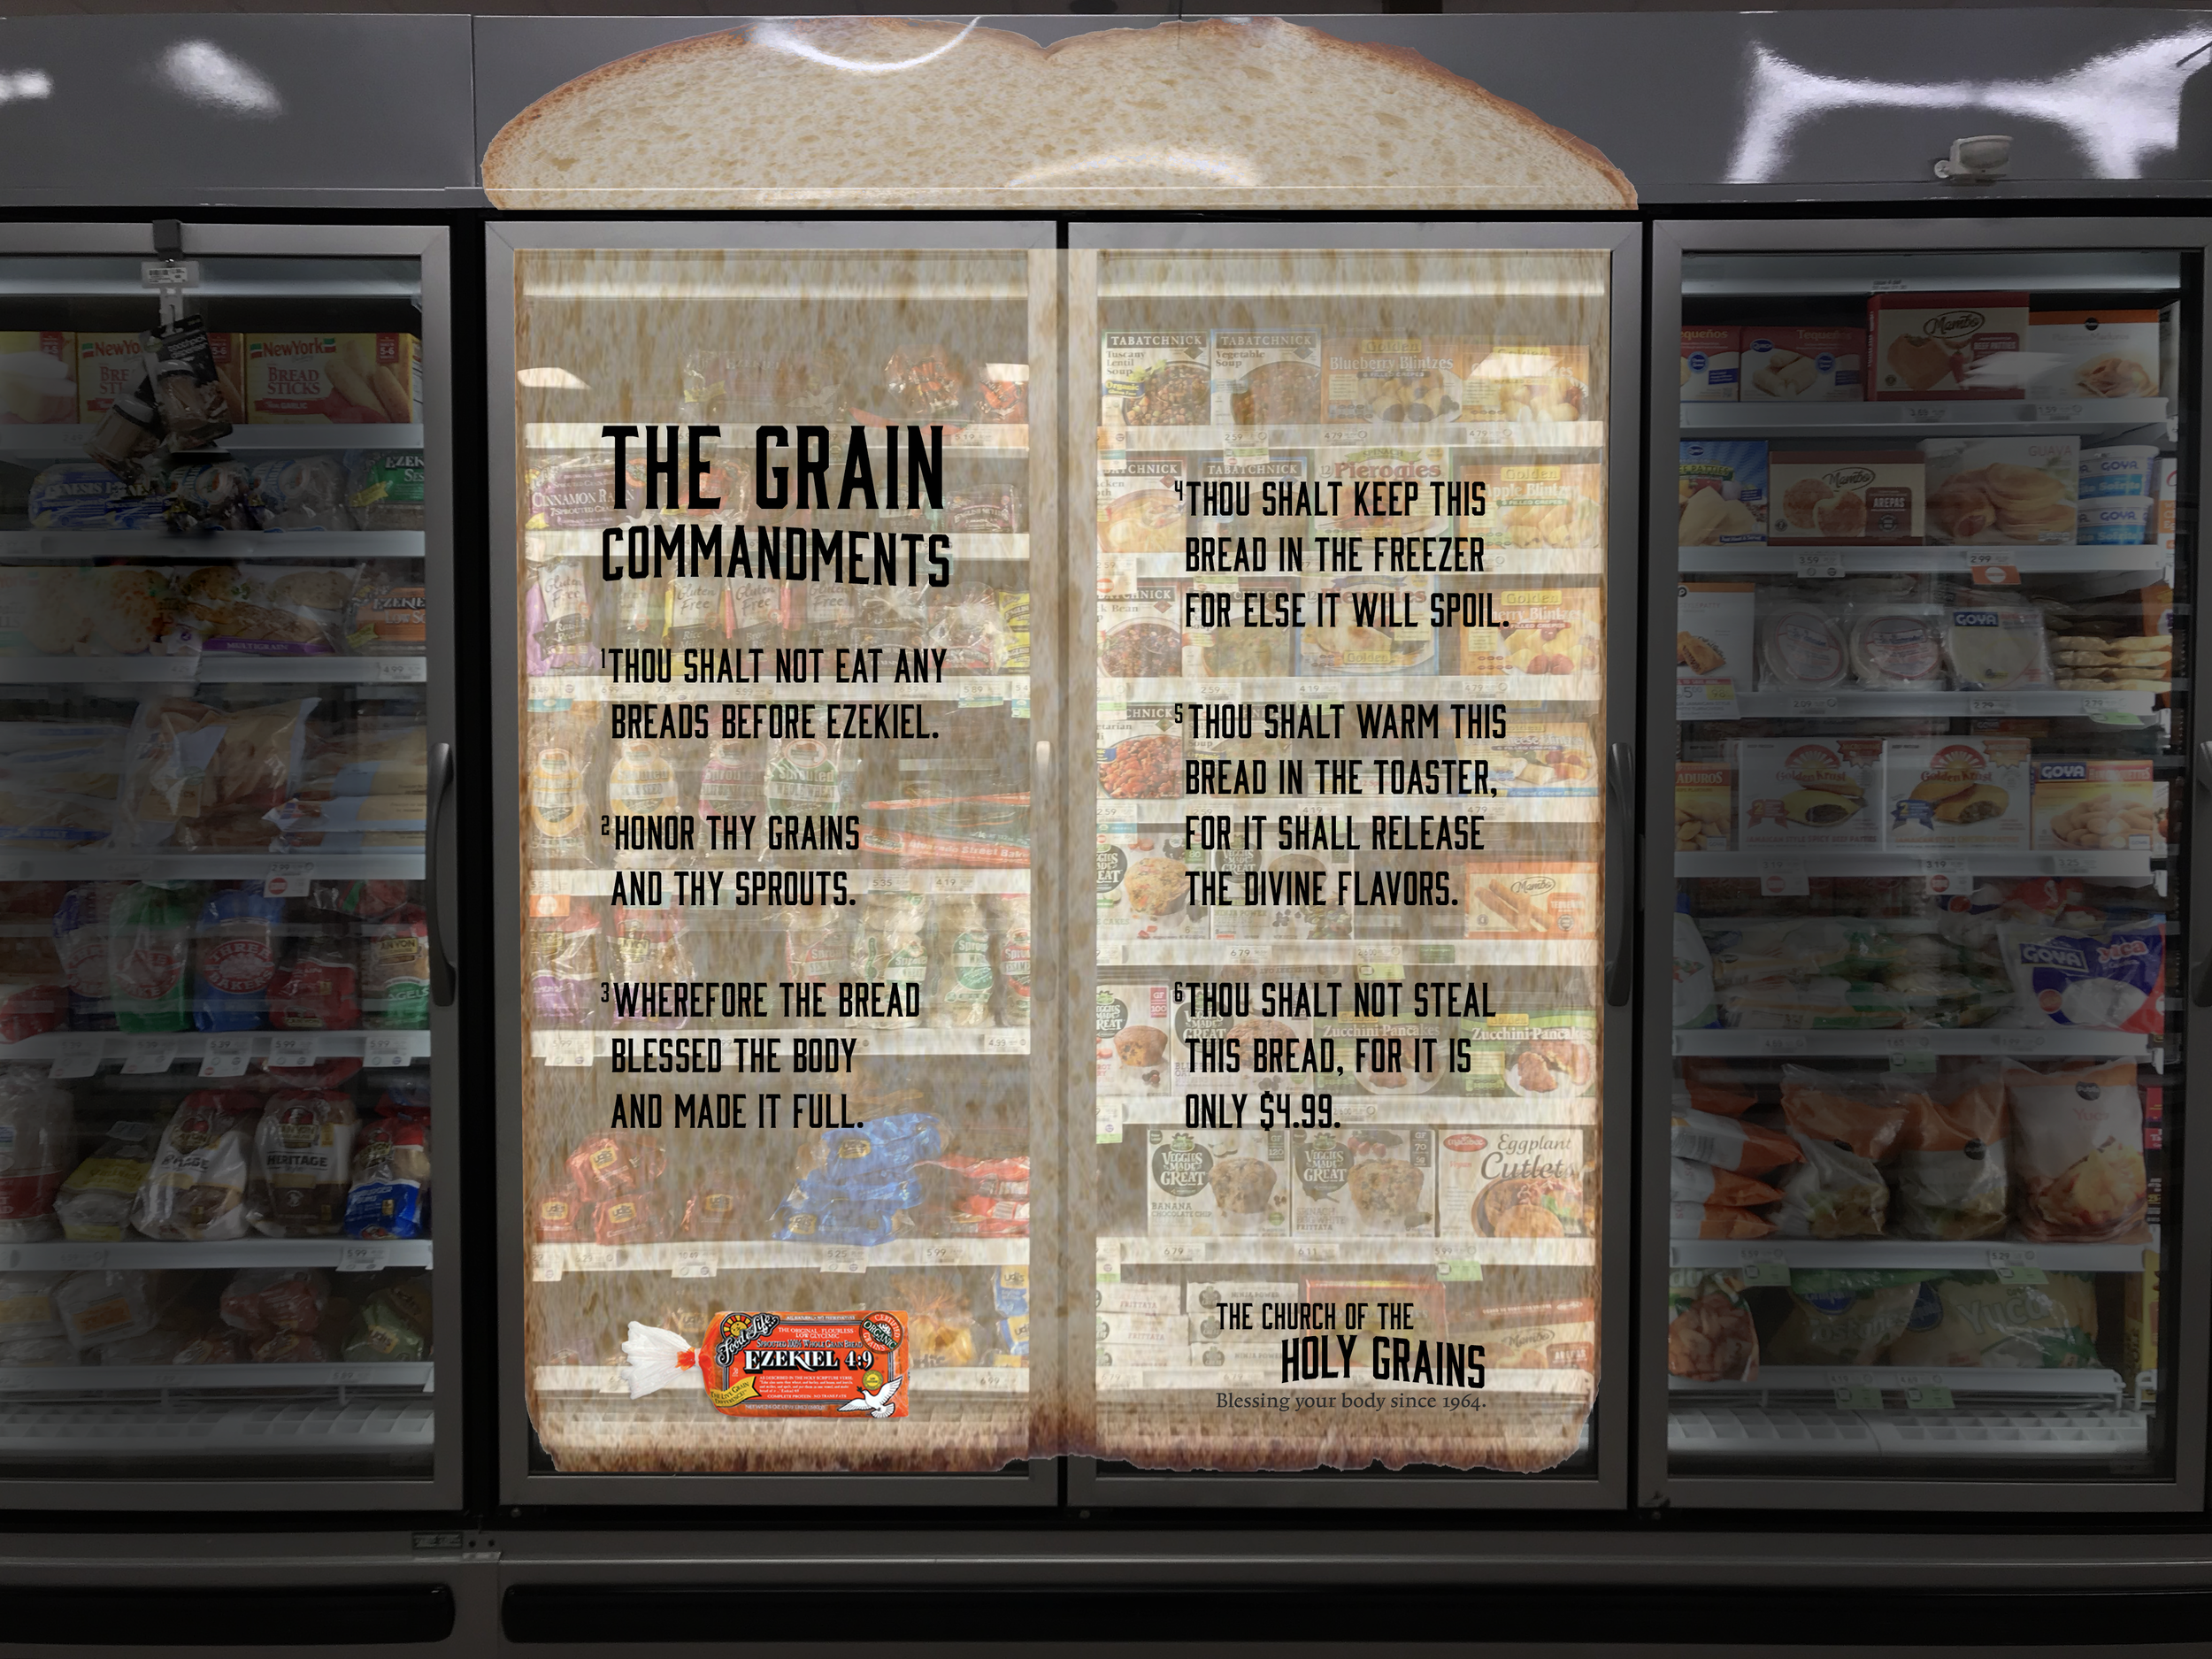 When shoppers walk down the freezer aisle they'll see the bread-slab decal with the six Grain Commandments. When they open the freezer doors, a pleasing choir will play (click the play button below to hear).